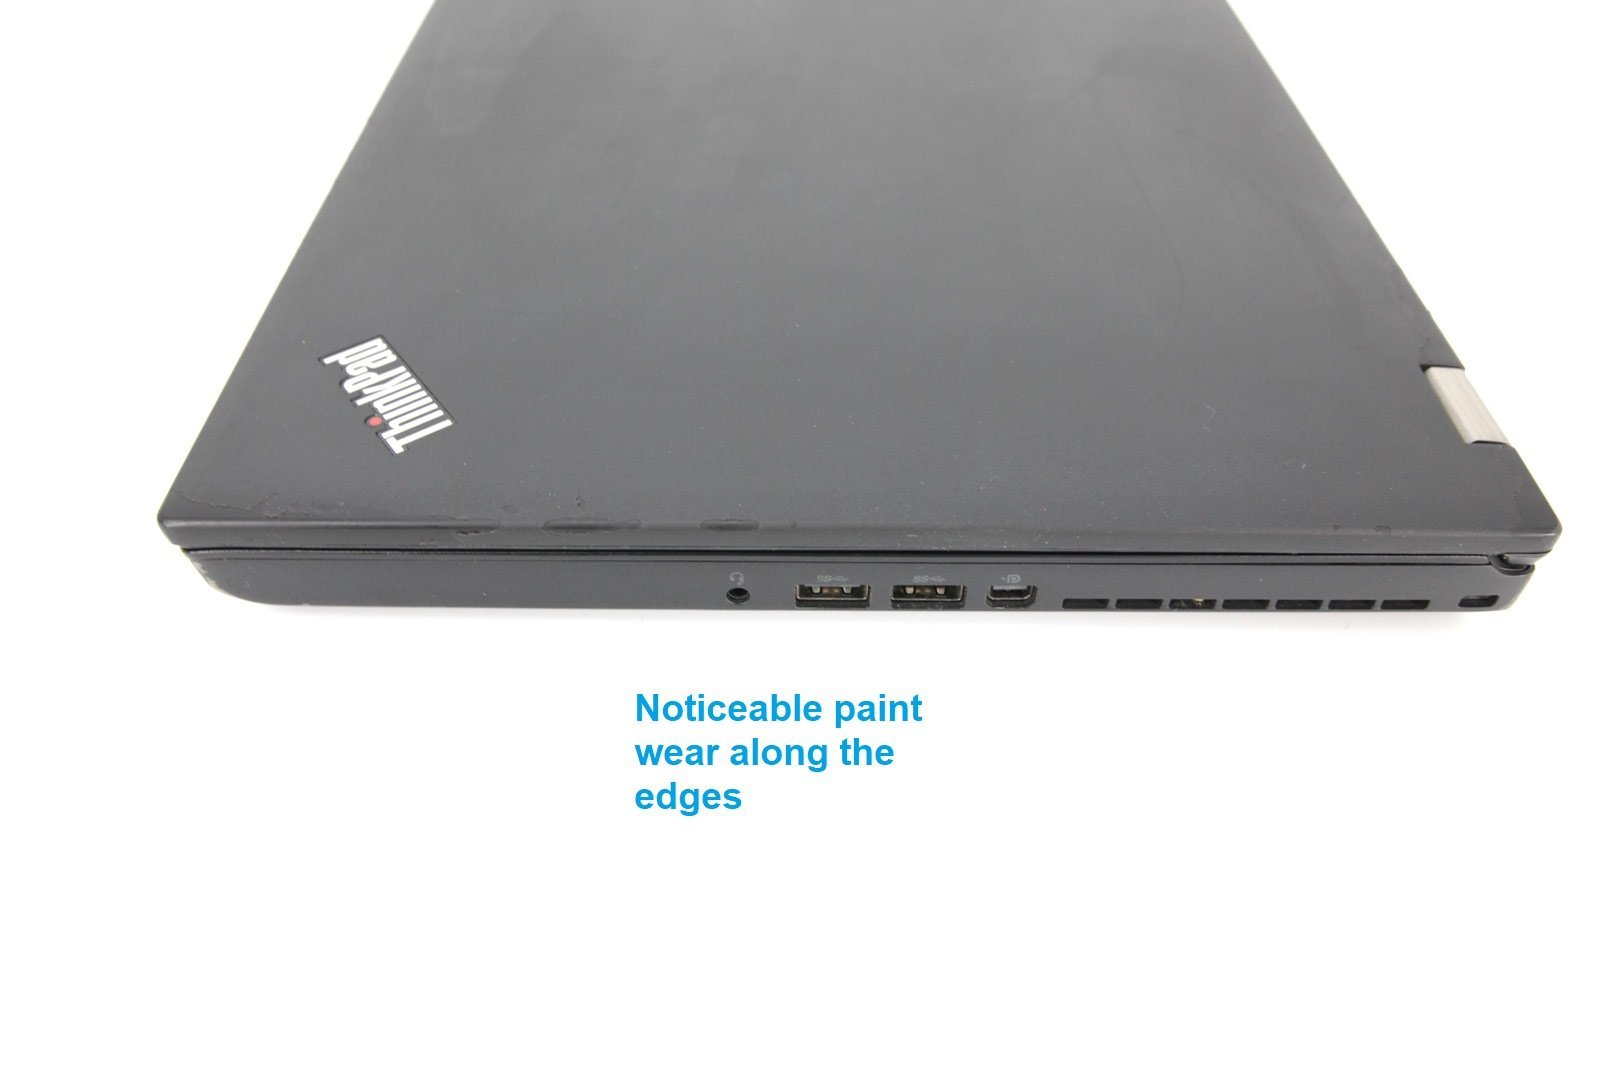 Lenovo Thinkpad P50 CAD Laptop: Core i7-6820HQ 256GB Quadro 8GB RAM VAT Grade C - CruiseTech